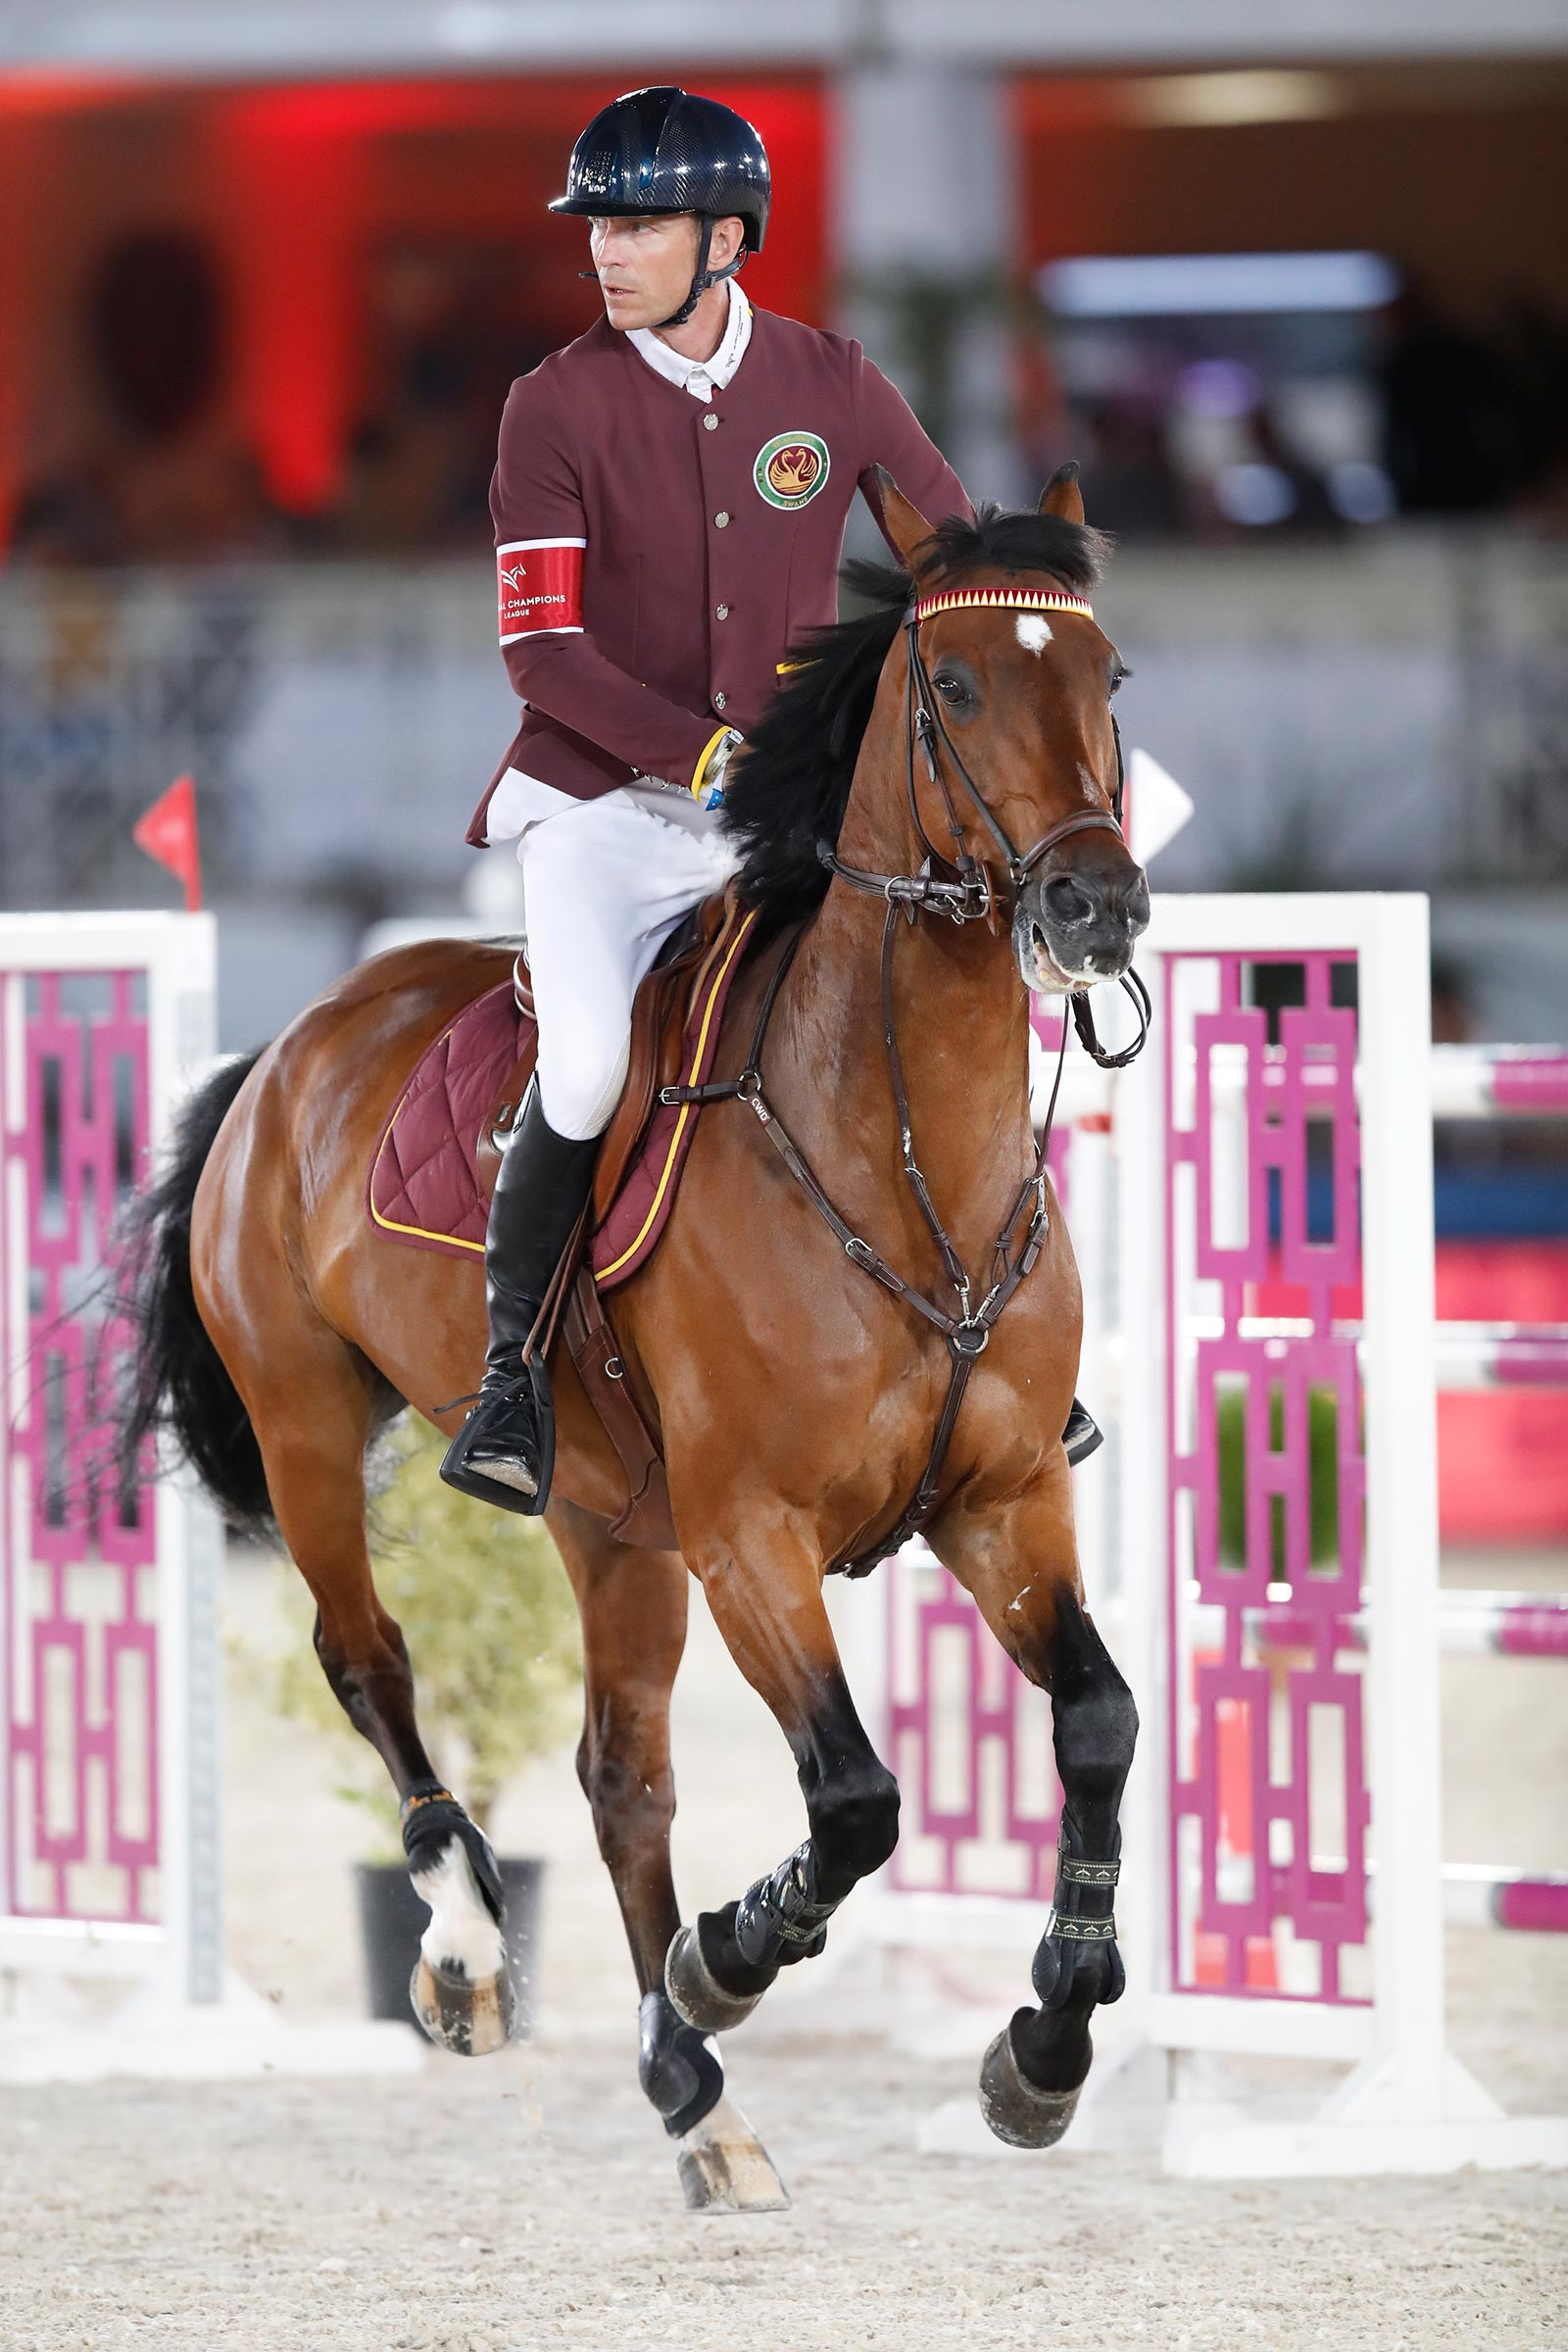 Team Shanghai Swans - Peder Fredricson (SWE) on H&M Christian K ph.Stefano Grasso/GCL CANNES 2019 DOWNLOAD